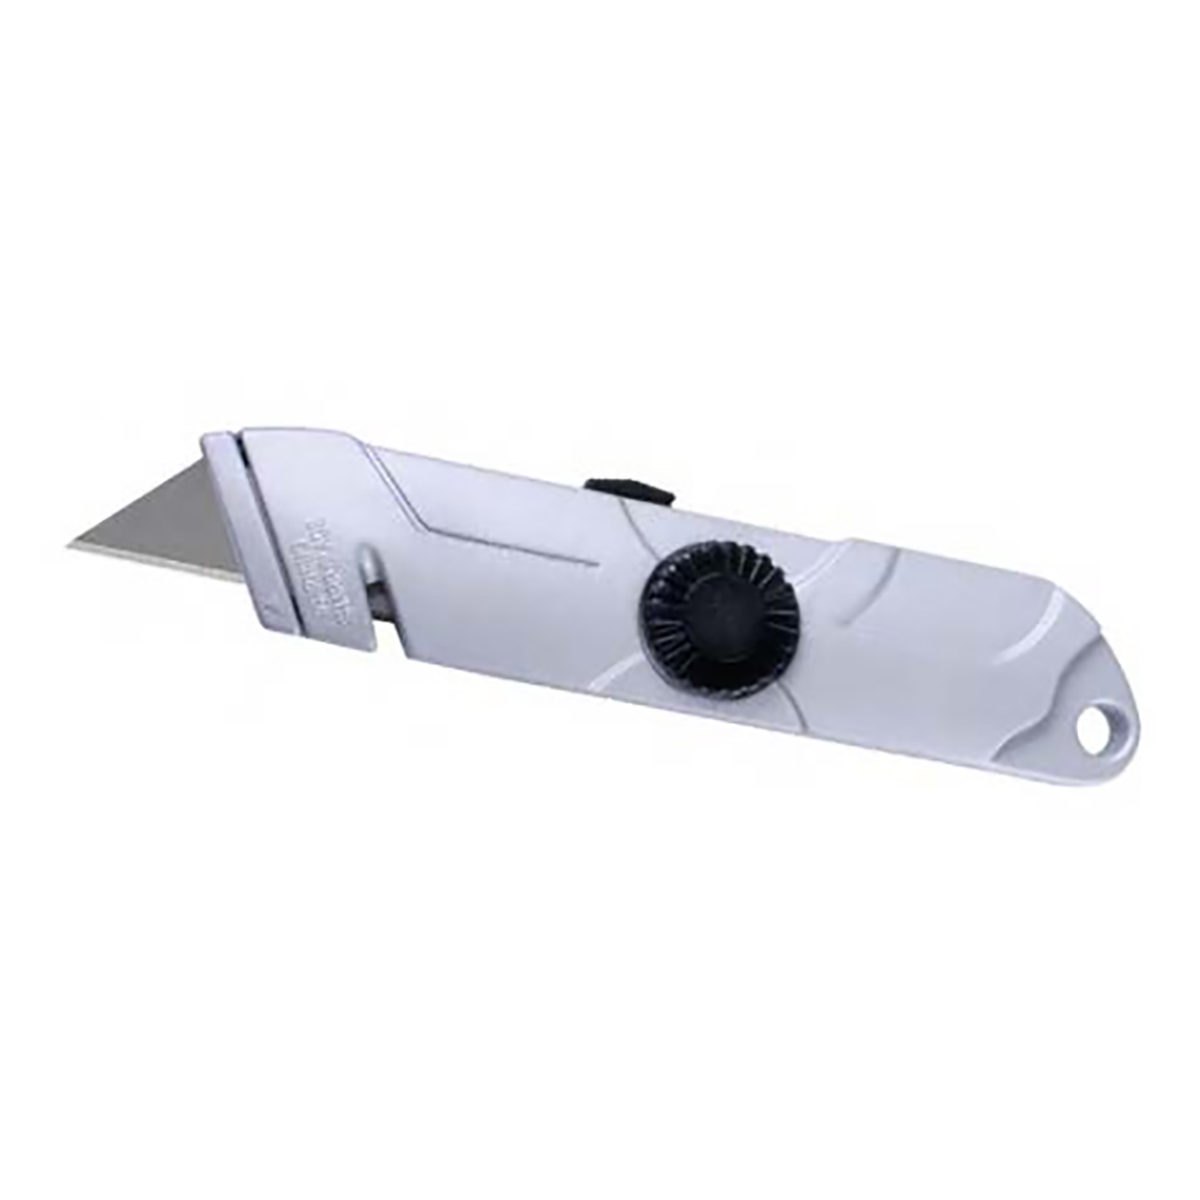 Self Retracting Utility Knife - silver